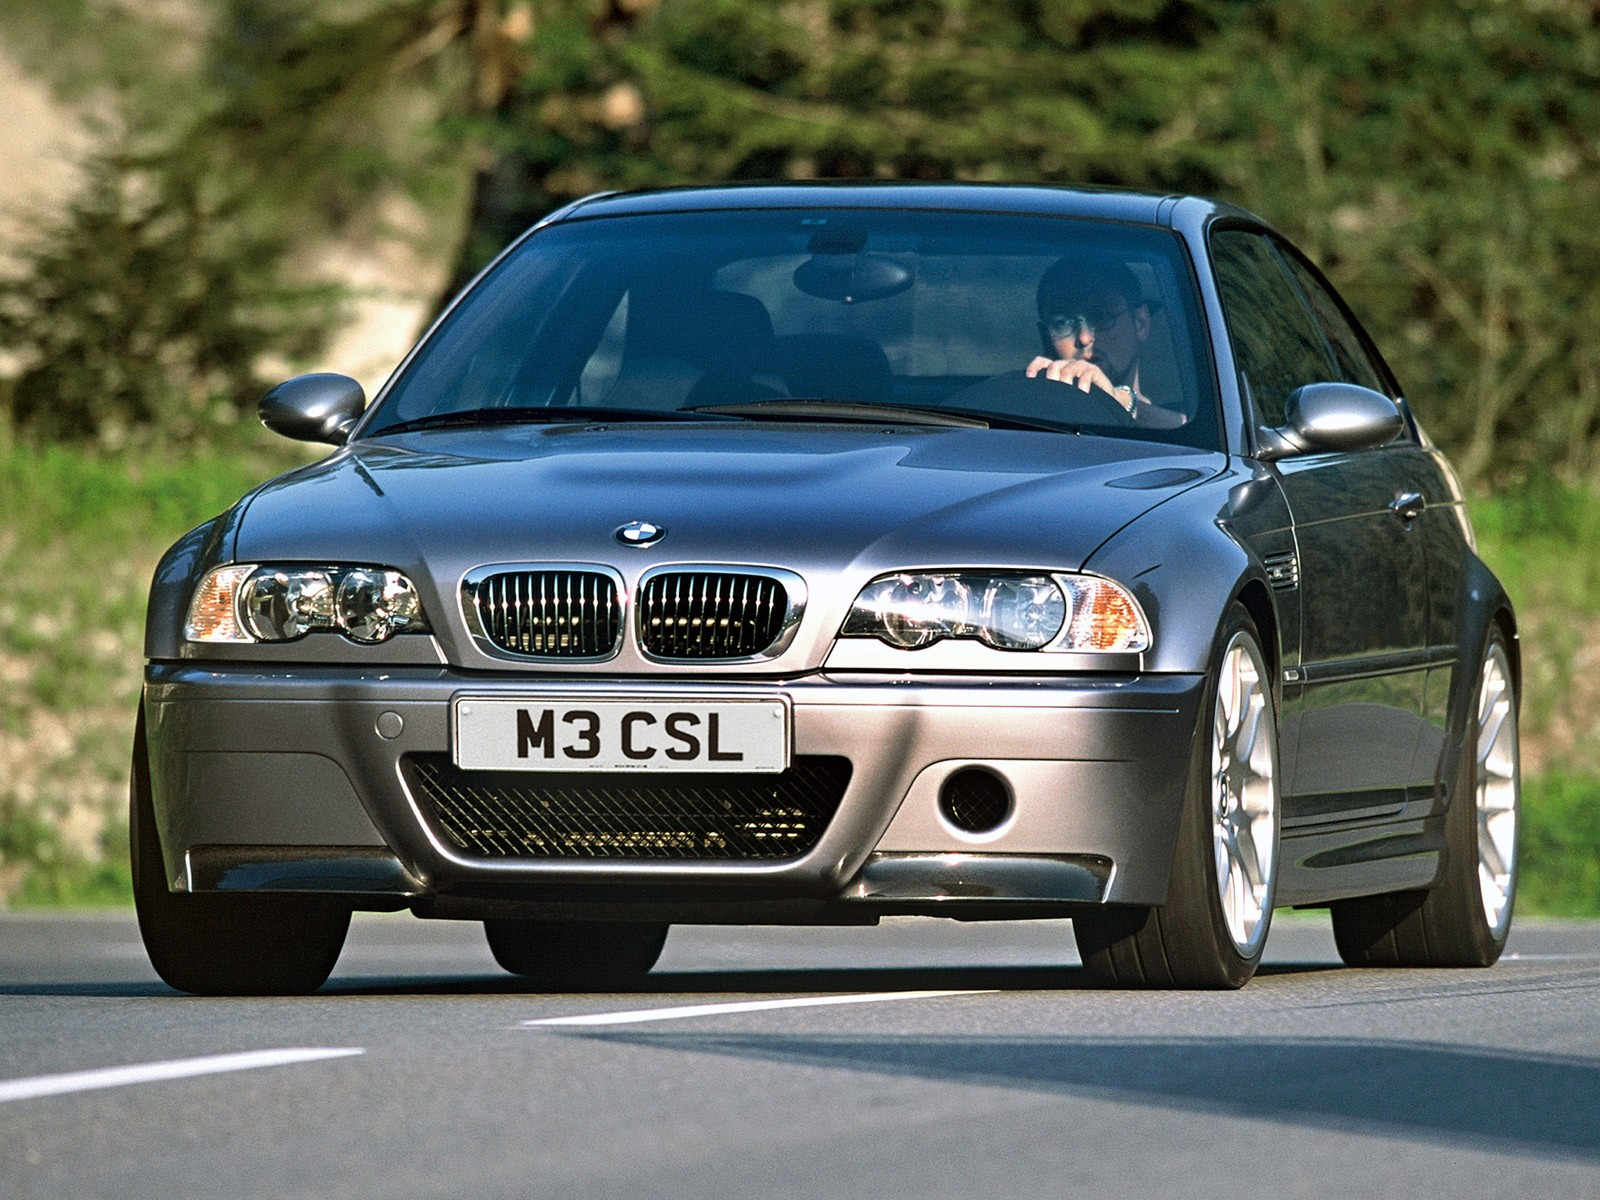 BMW-M3-CSL-Coupe-2003-1